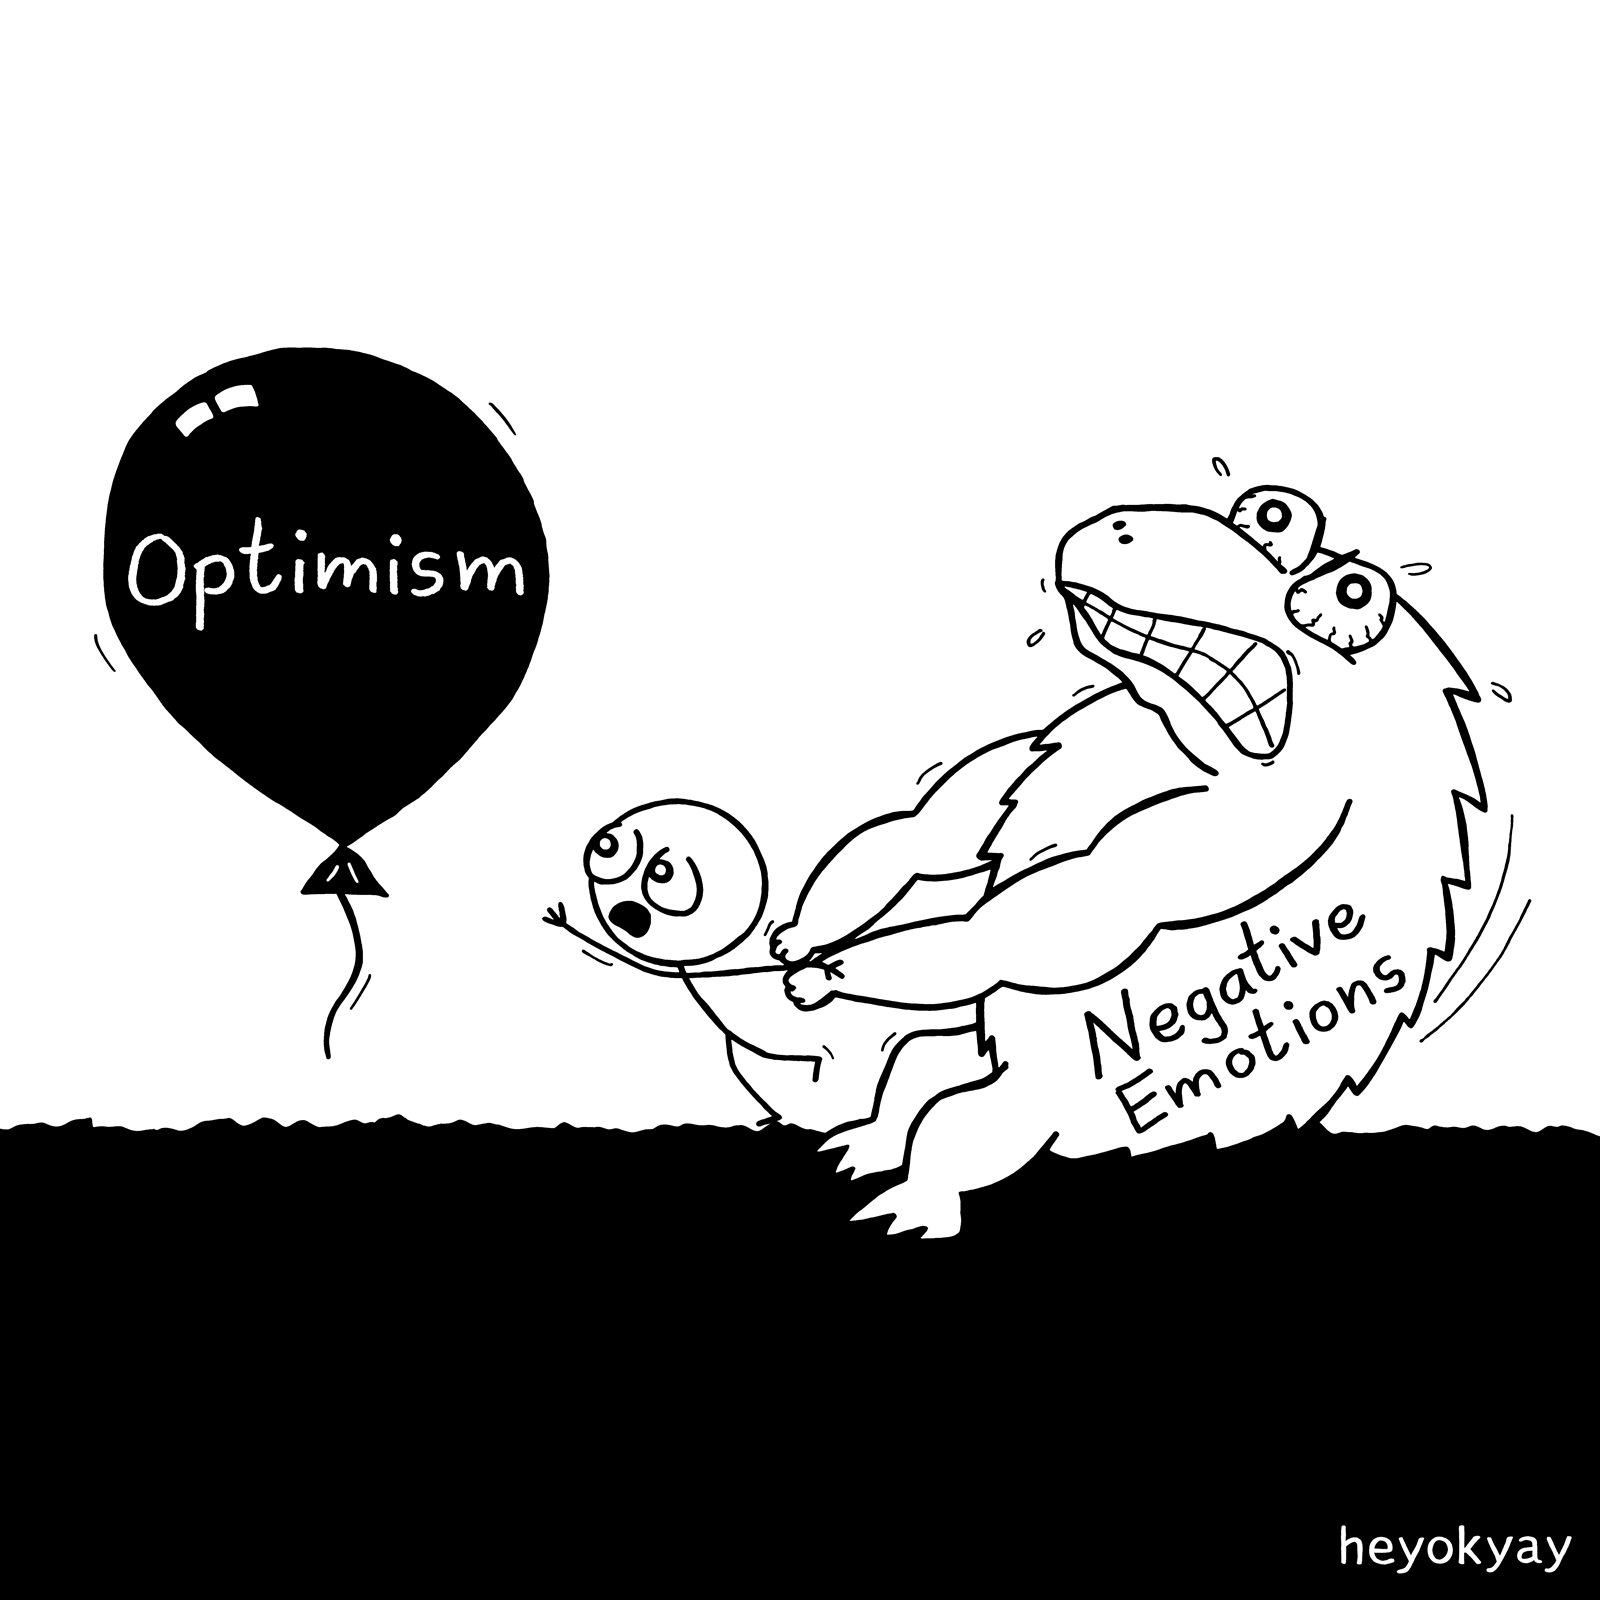 Optimism heyokyay comic